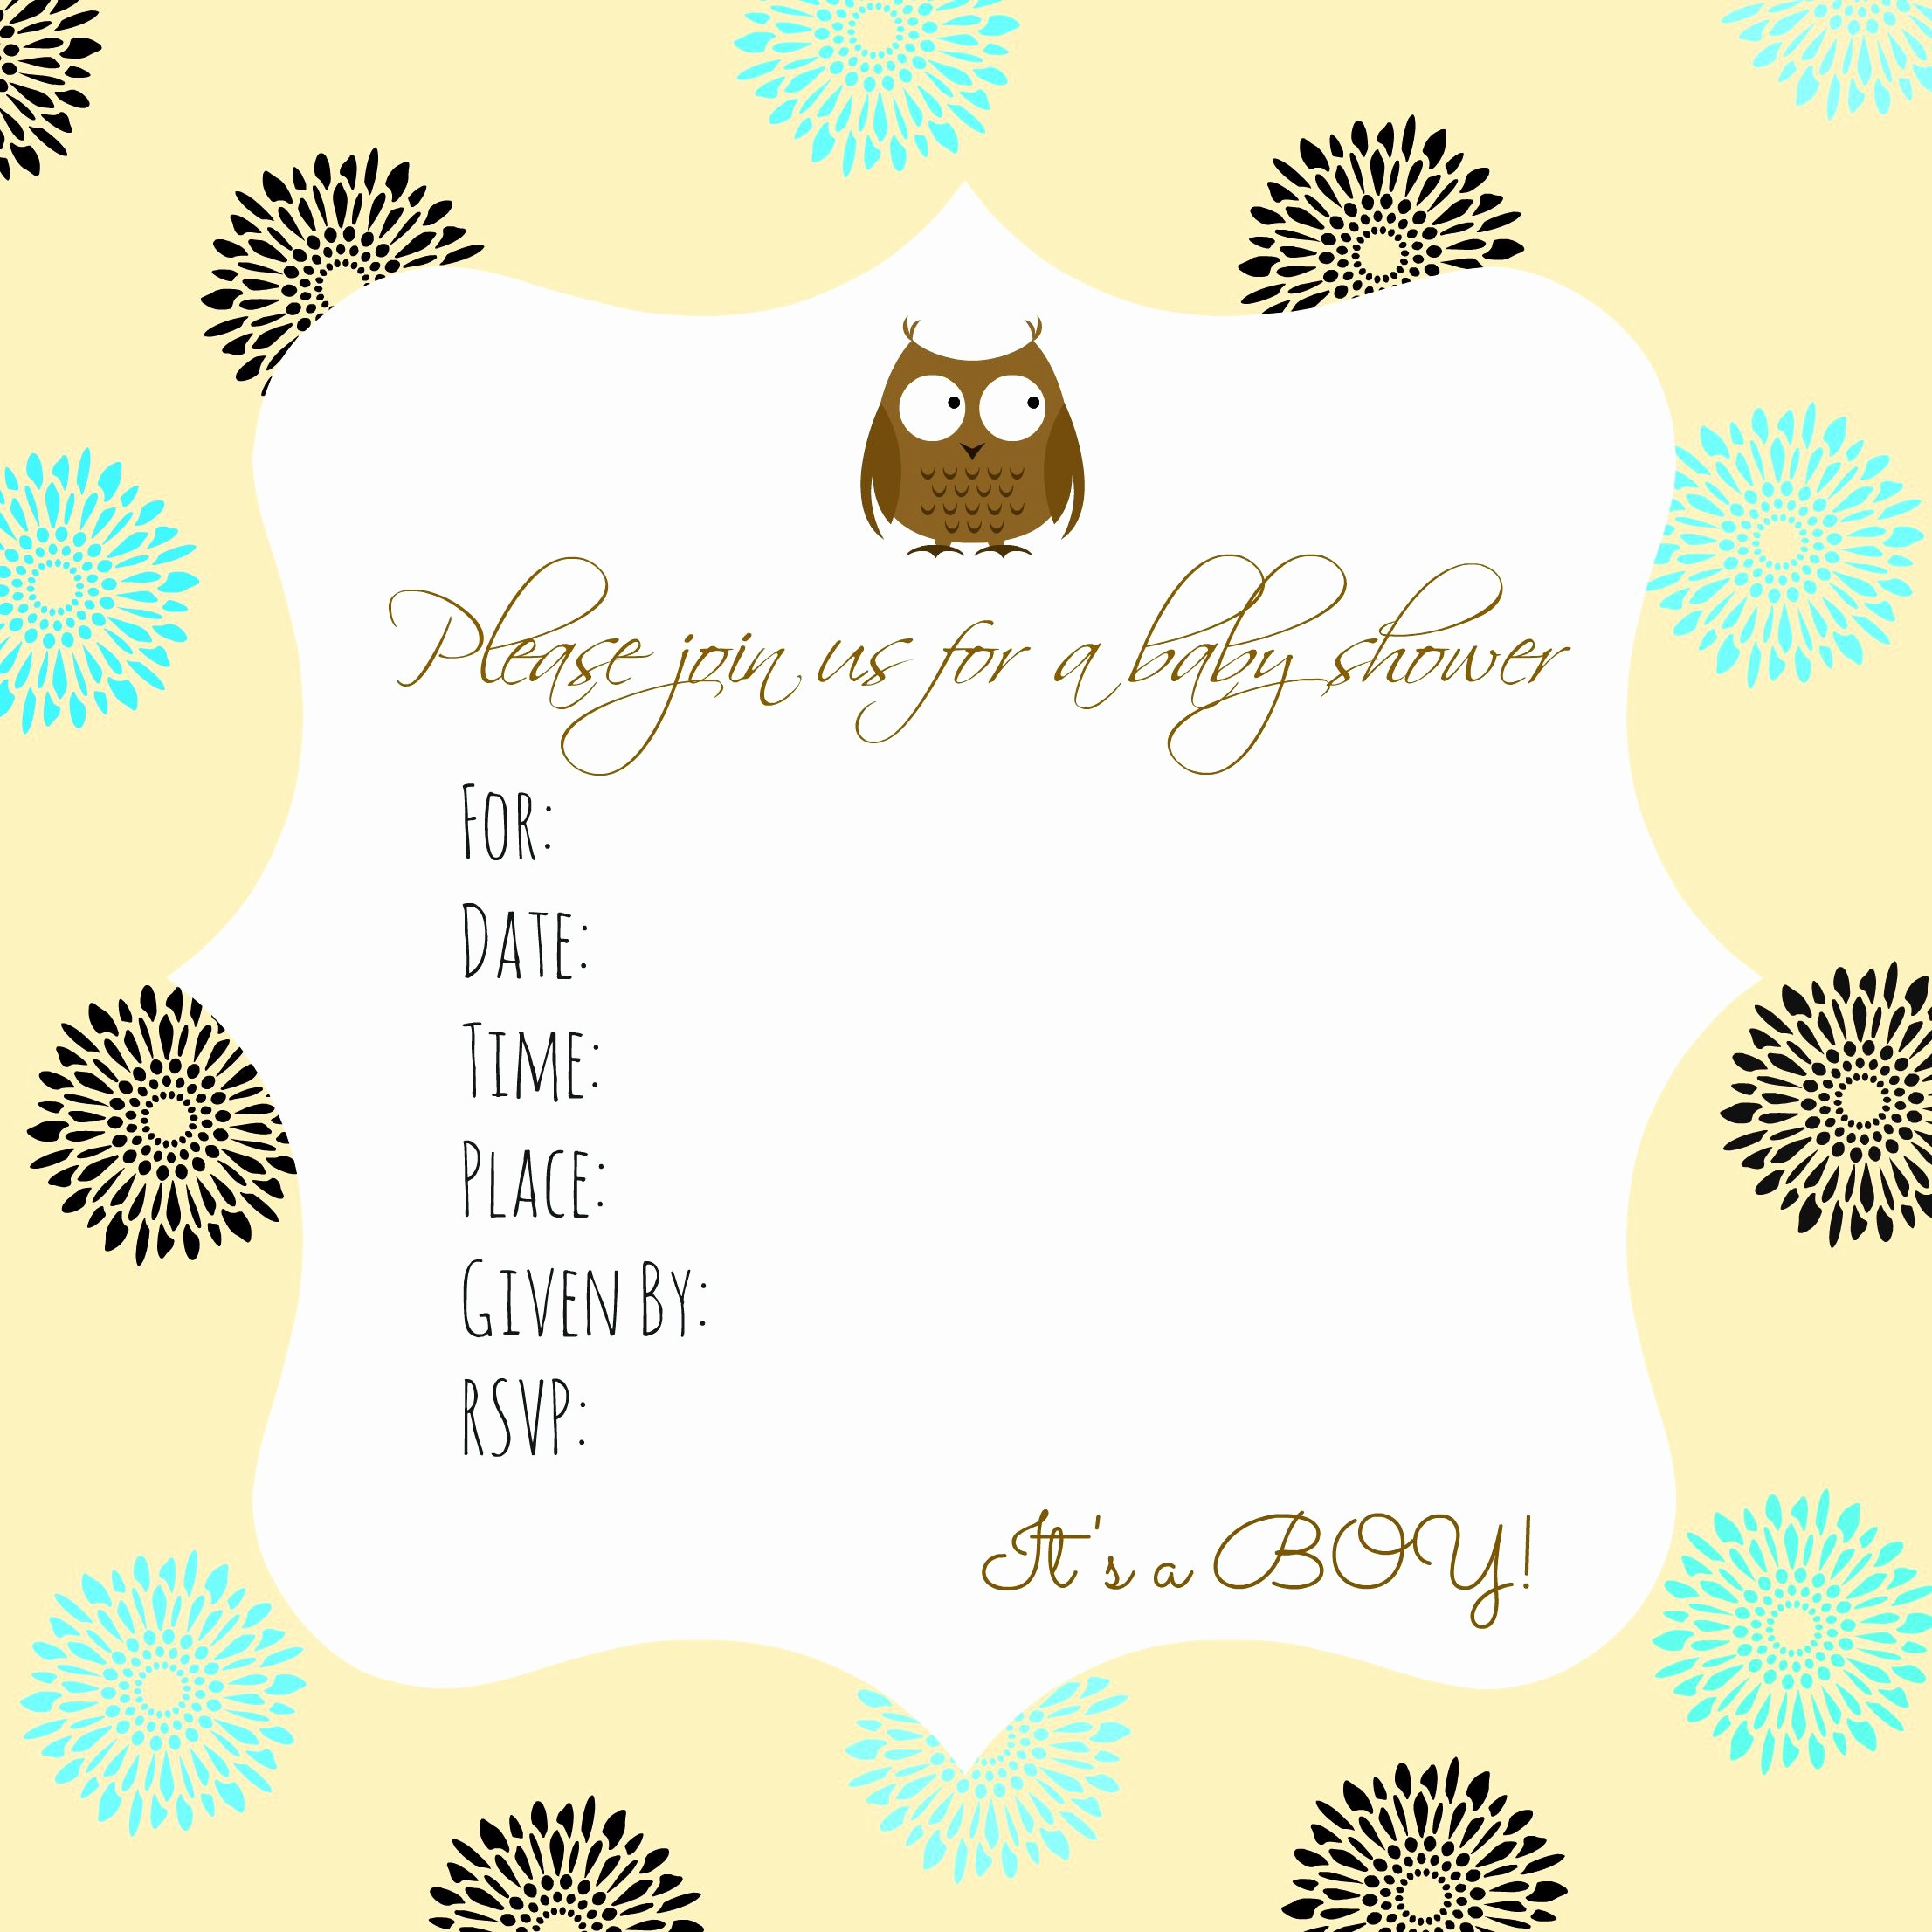 Baby Shower Invitation List Template Best Of Baby Shower Invitation Baby Shower Invitation Templates